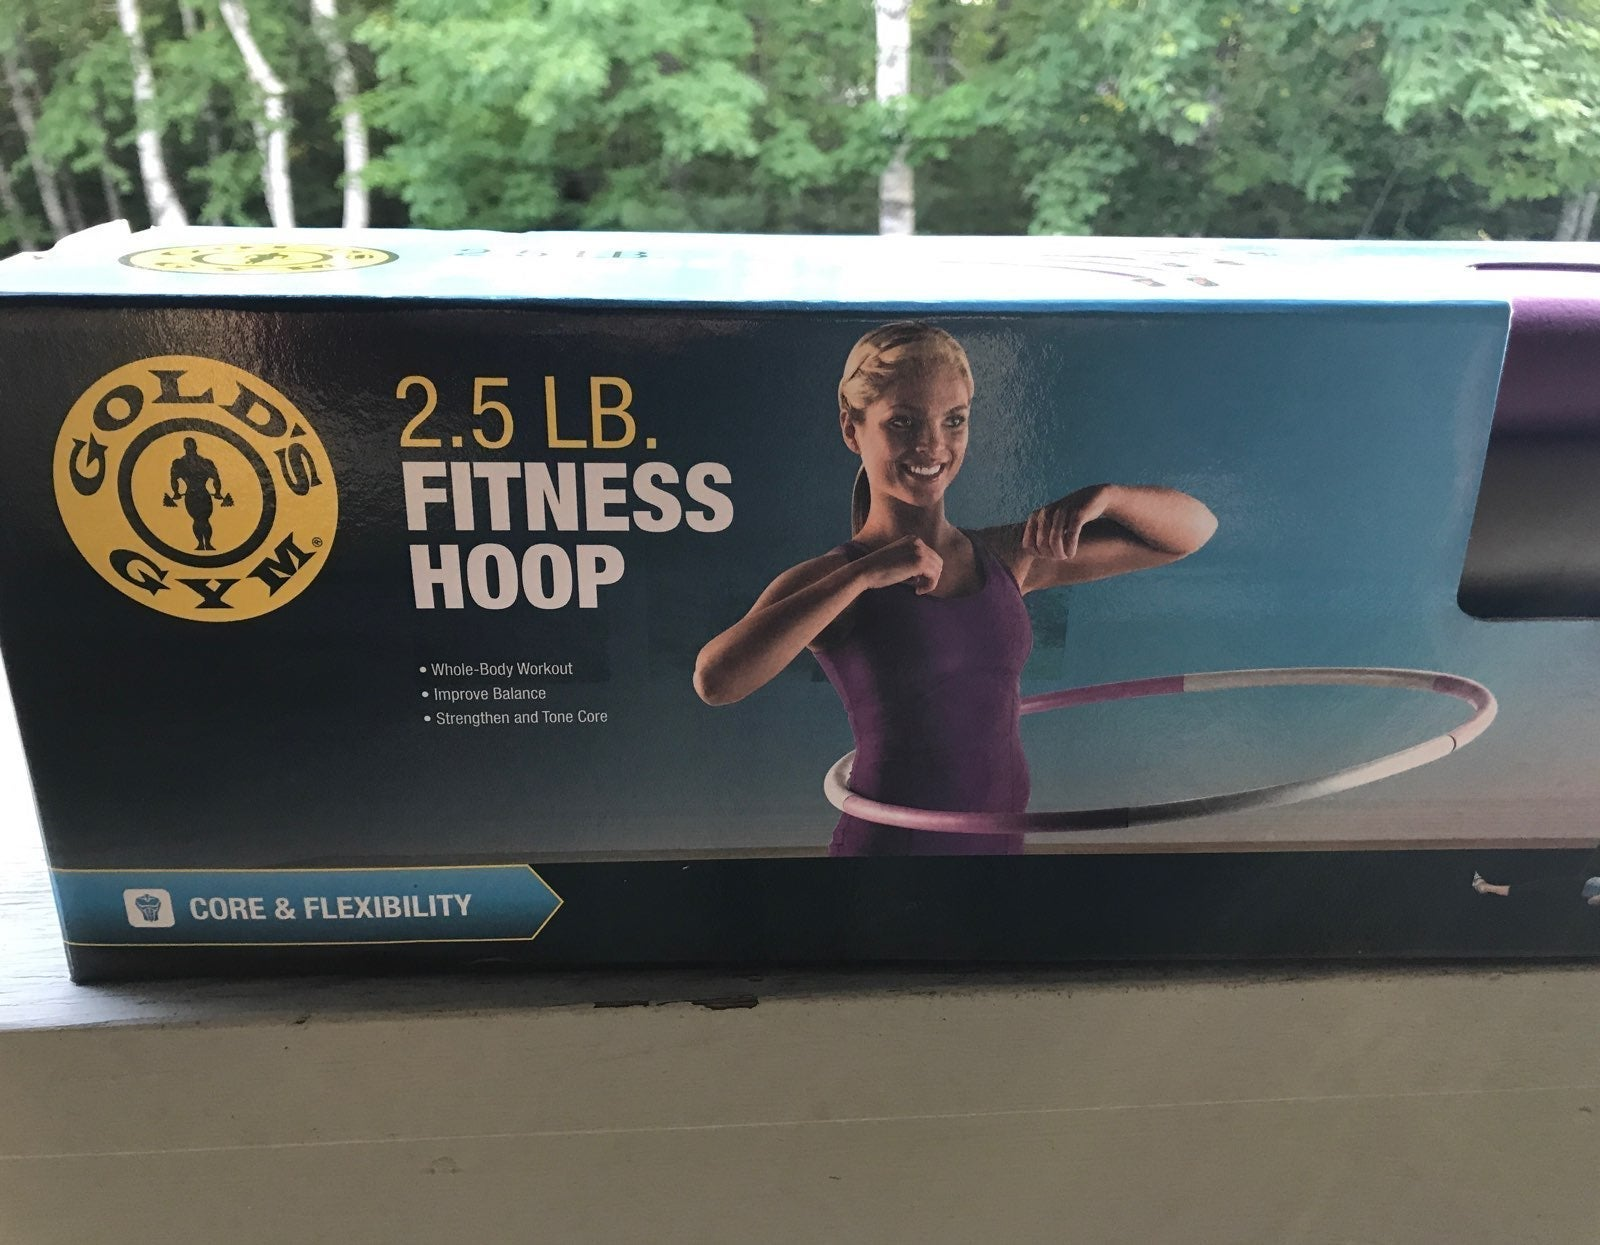 Gold's Gym Fitness Hoop